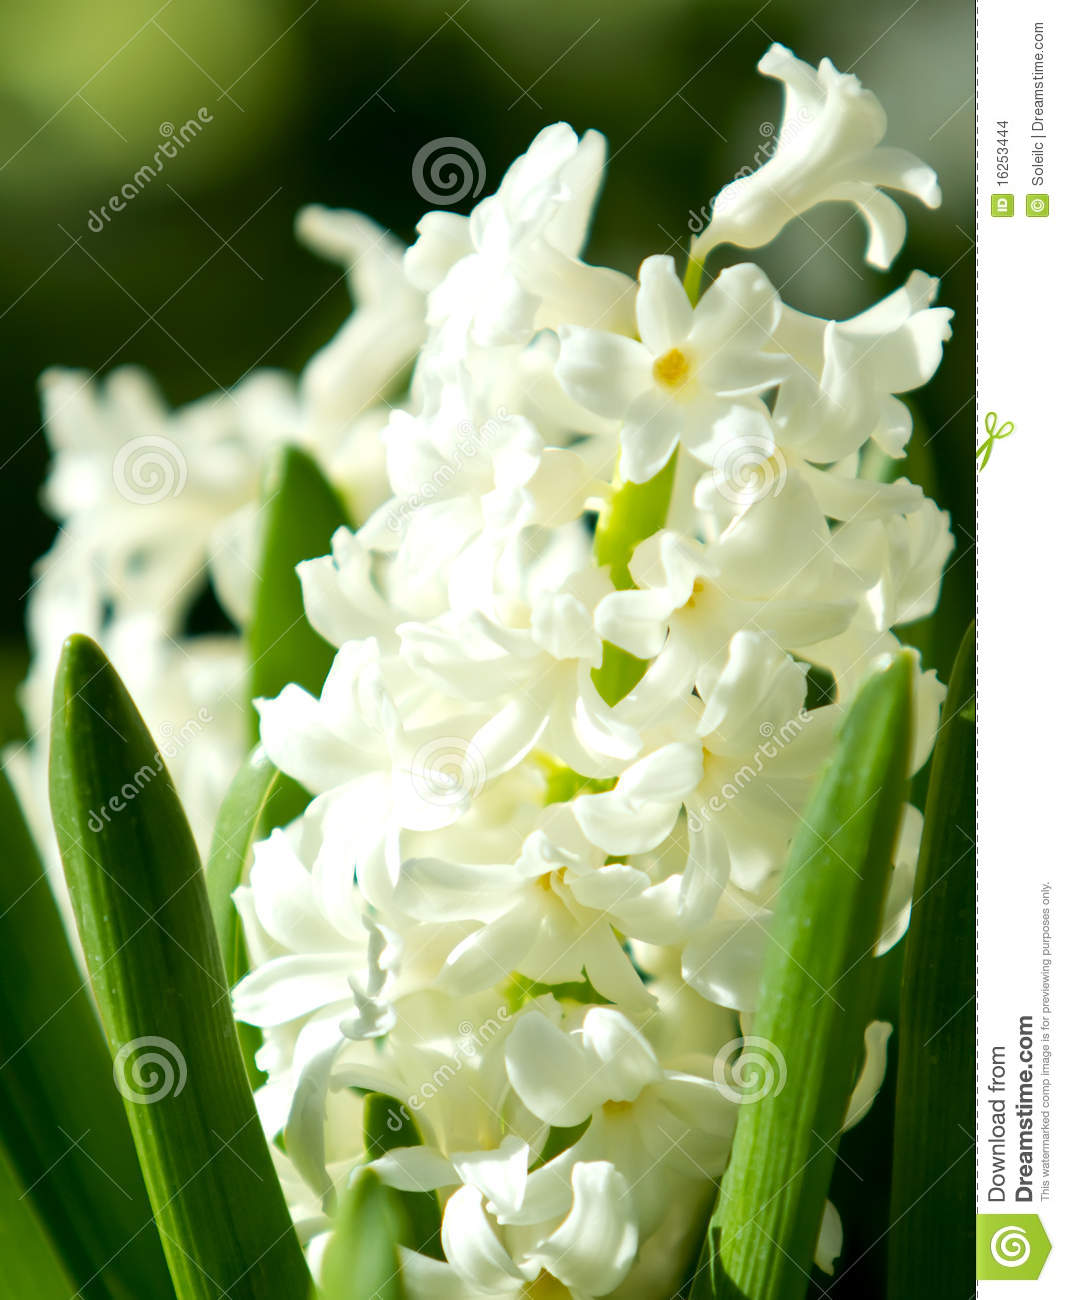 White Lily Flower Stock Photo Image Of Blur Hyacinth 16253444